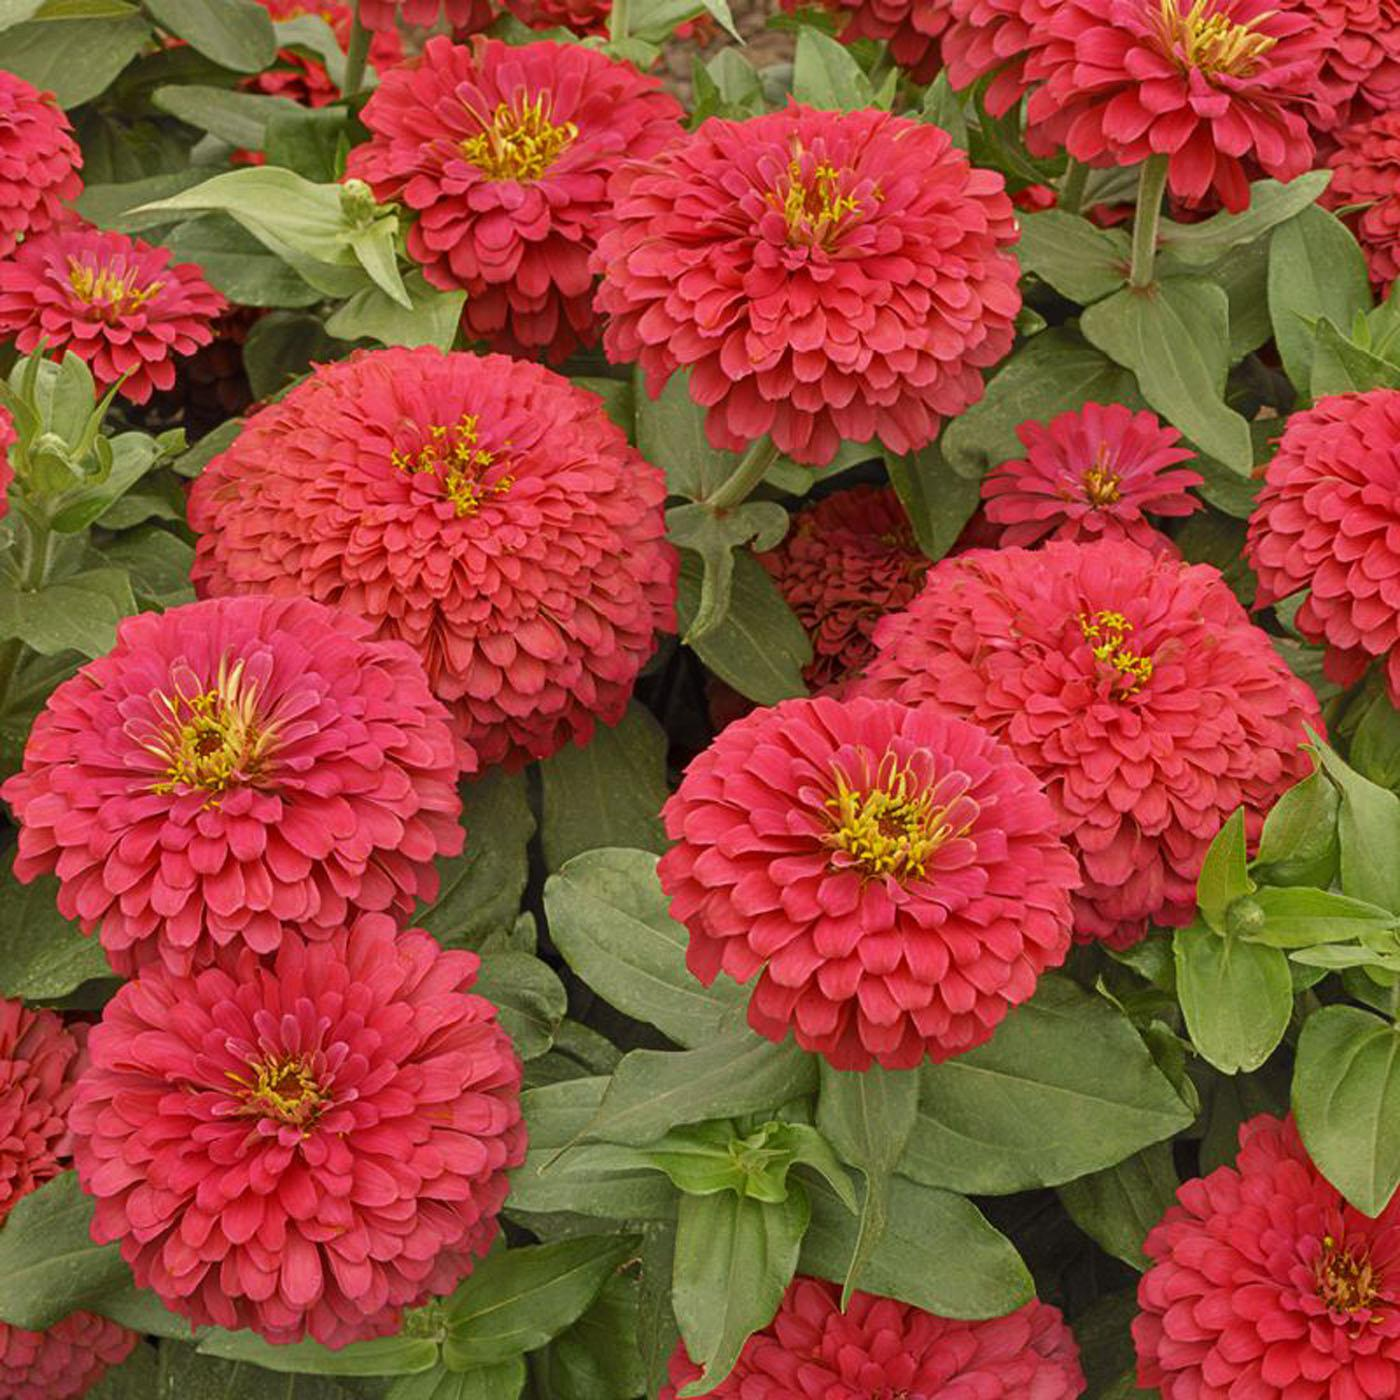 Zinnias looking hot for fall garden fest | Mississippi State ...